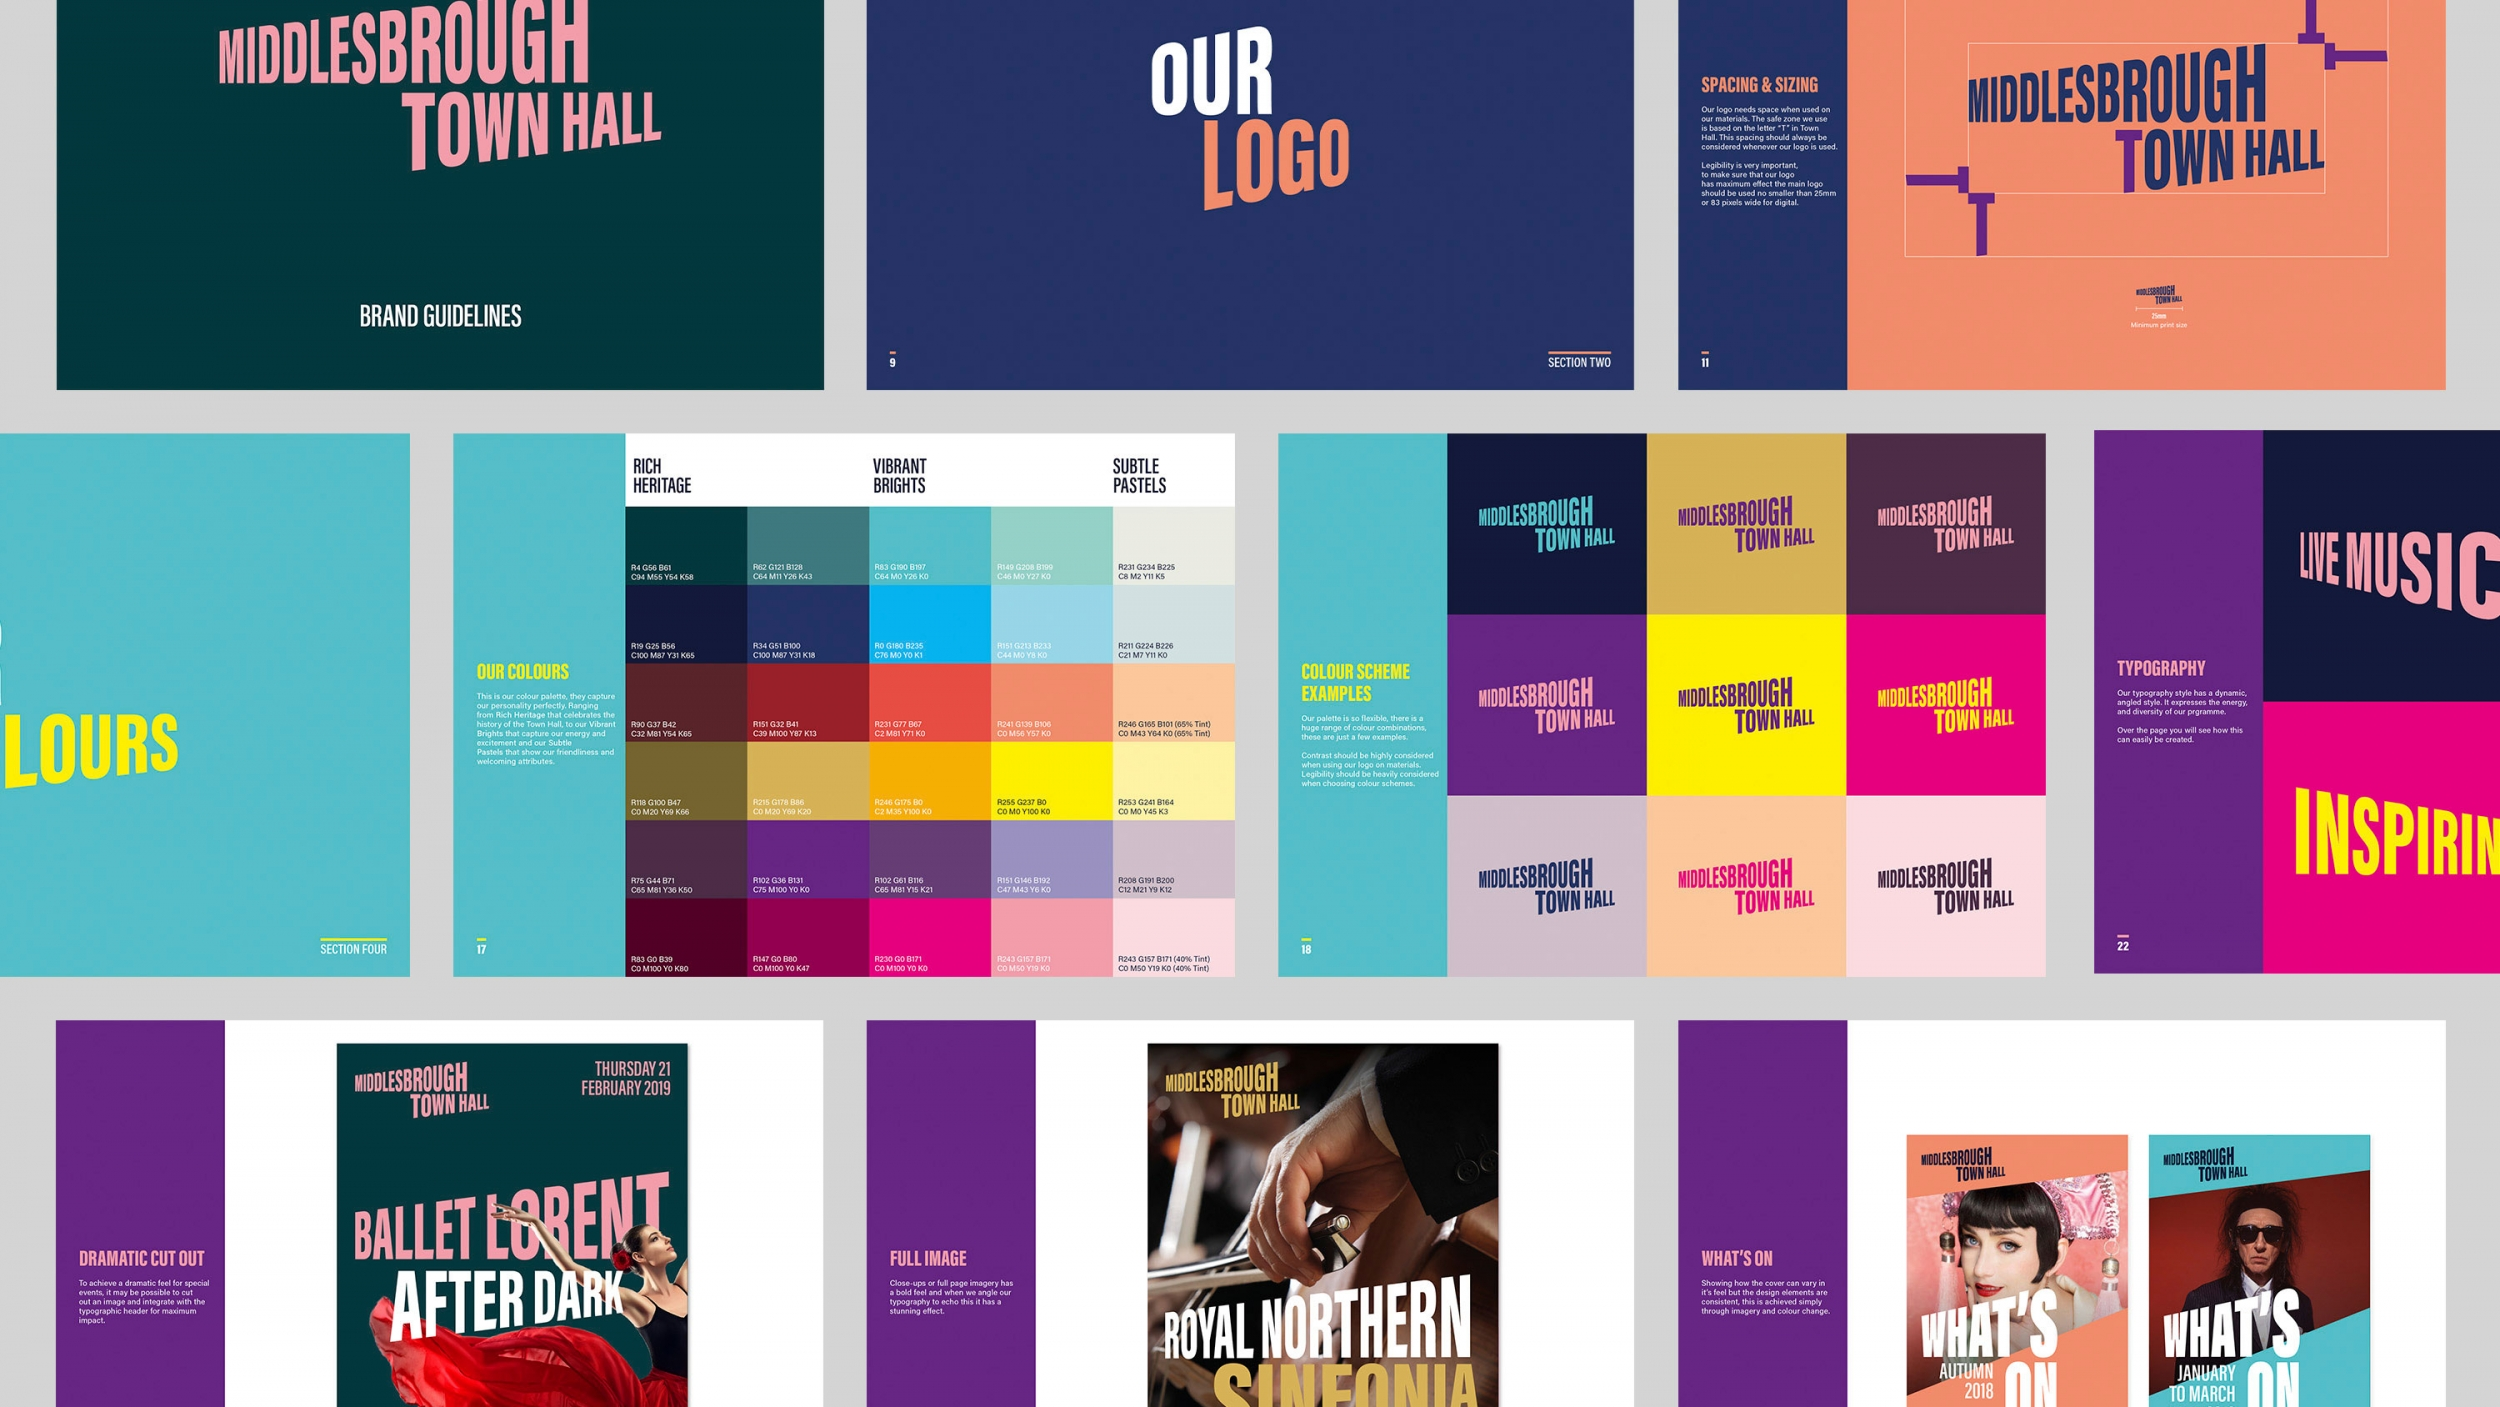 Brand guidelines and branding for Middlesbrough Town Hall.